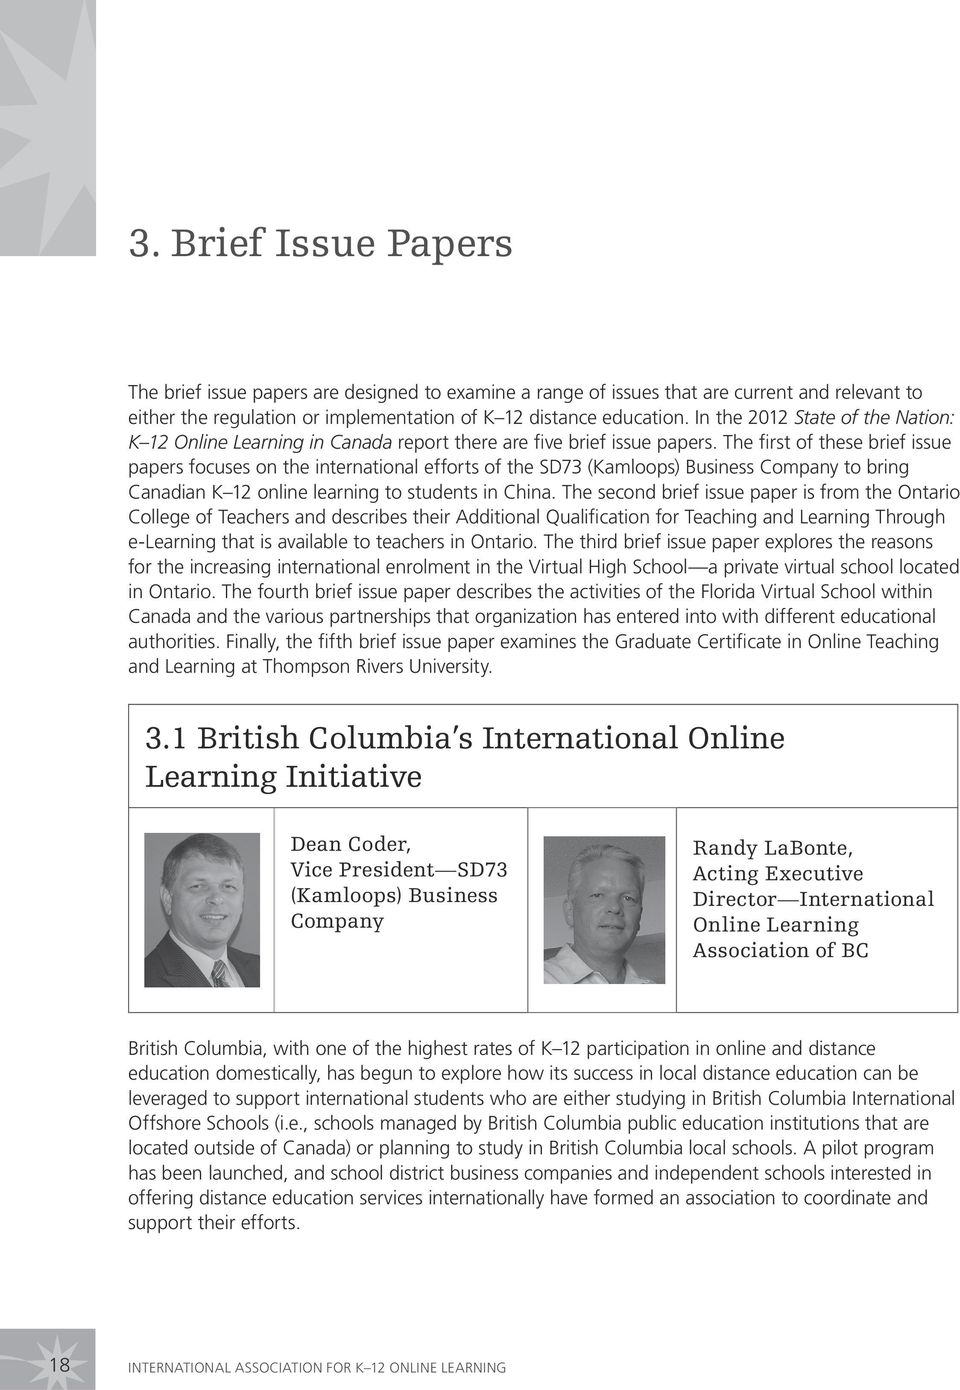 The first of these brief issue papers focuses on the international efforts of the SD73 (Kamloops) Business Company to bring Canadian K 12 online learning to students in China.